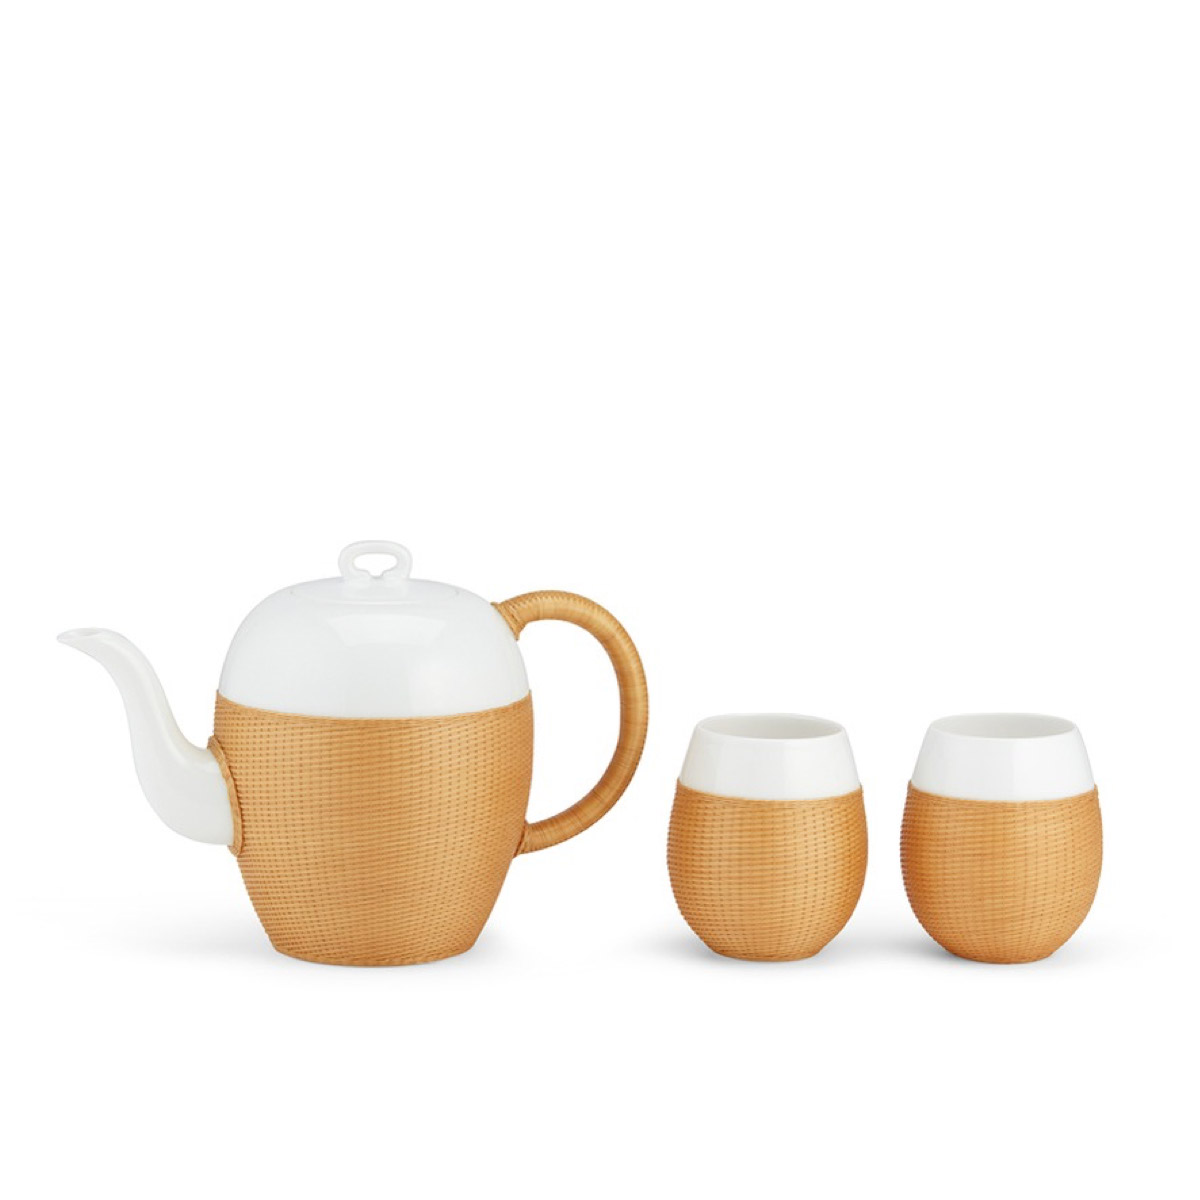 Bridge Tea Set